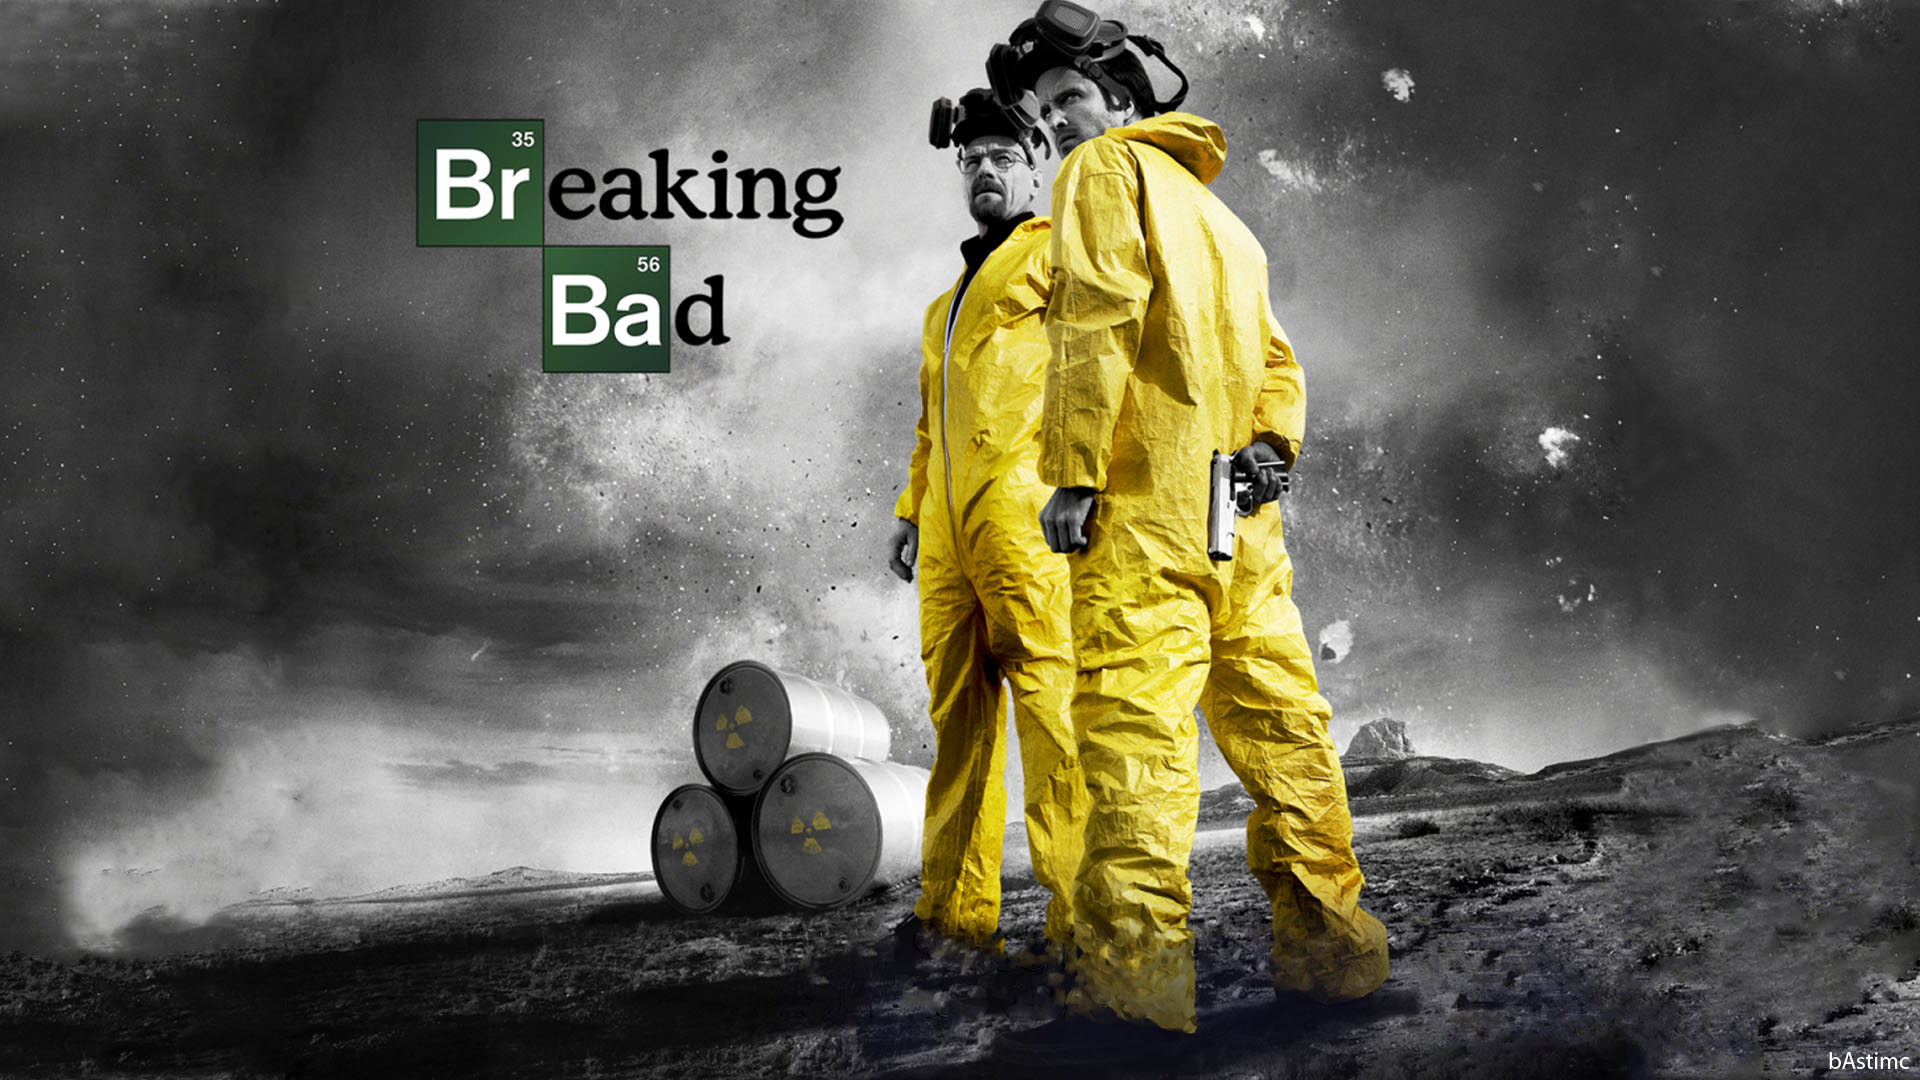 fonds d'écran breaking bad pc et tablettes (ipad, etc...)